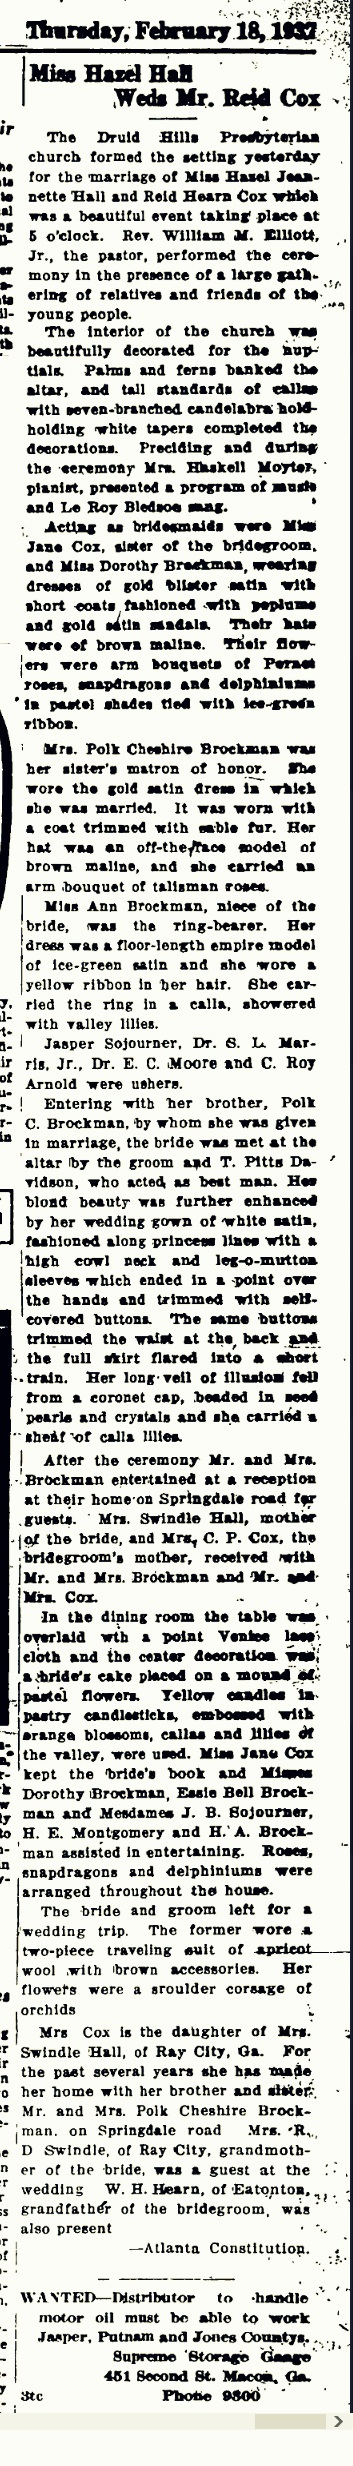 1937-feb-18-eatonton-messenger_hazel-hall-married